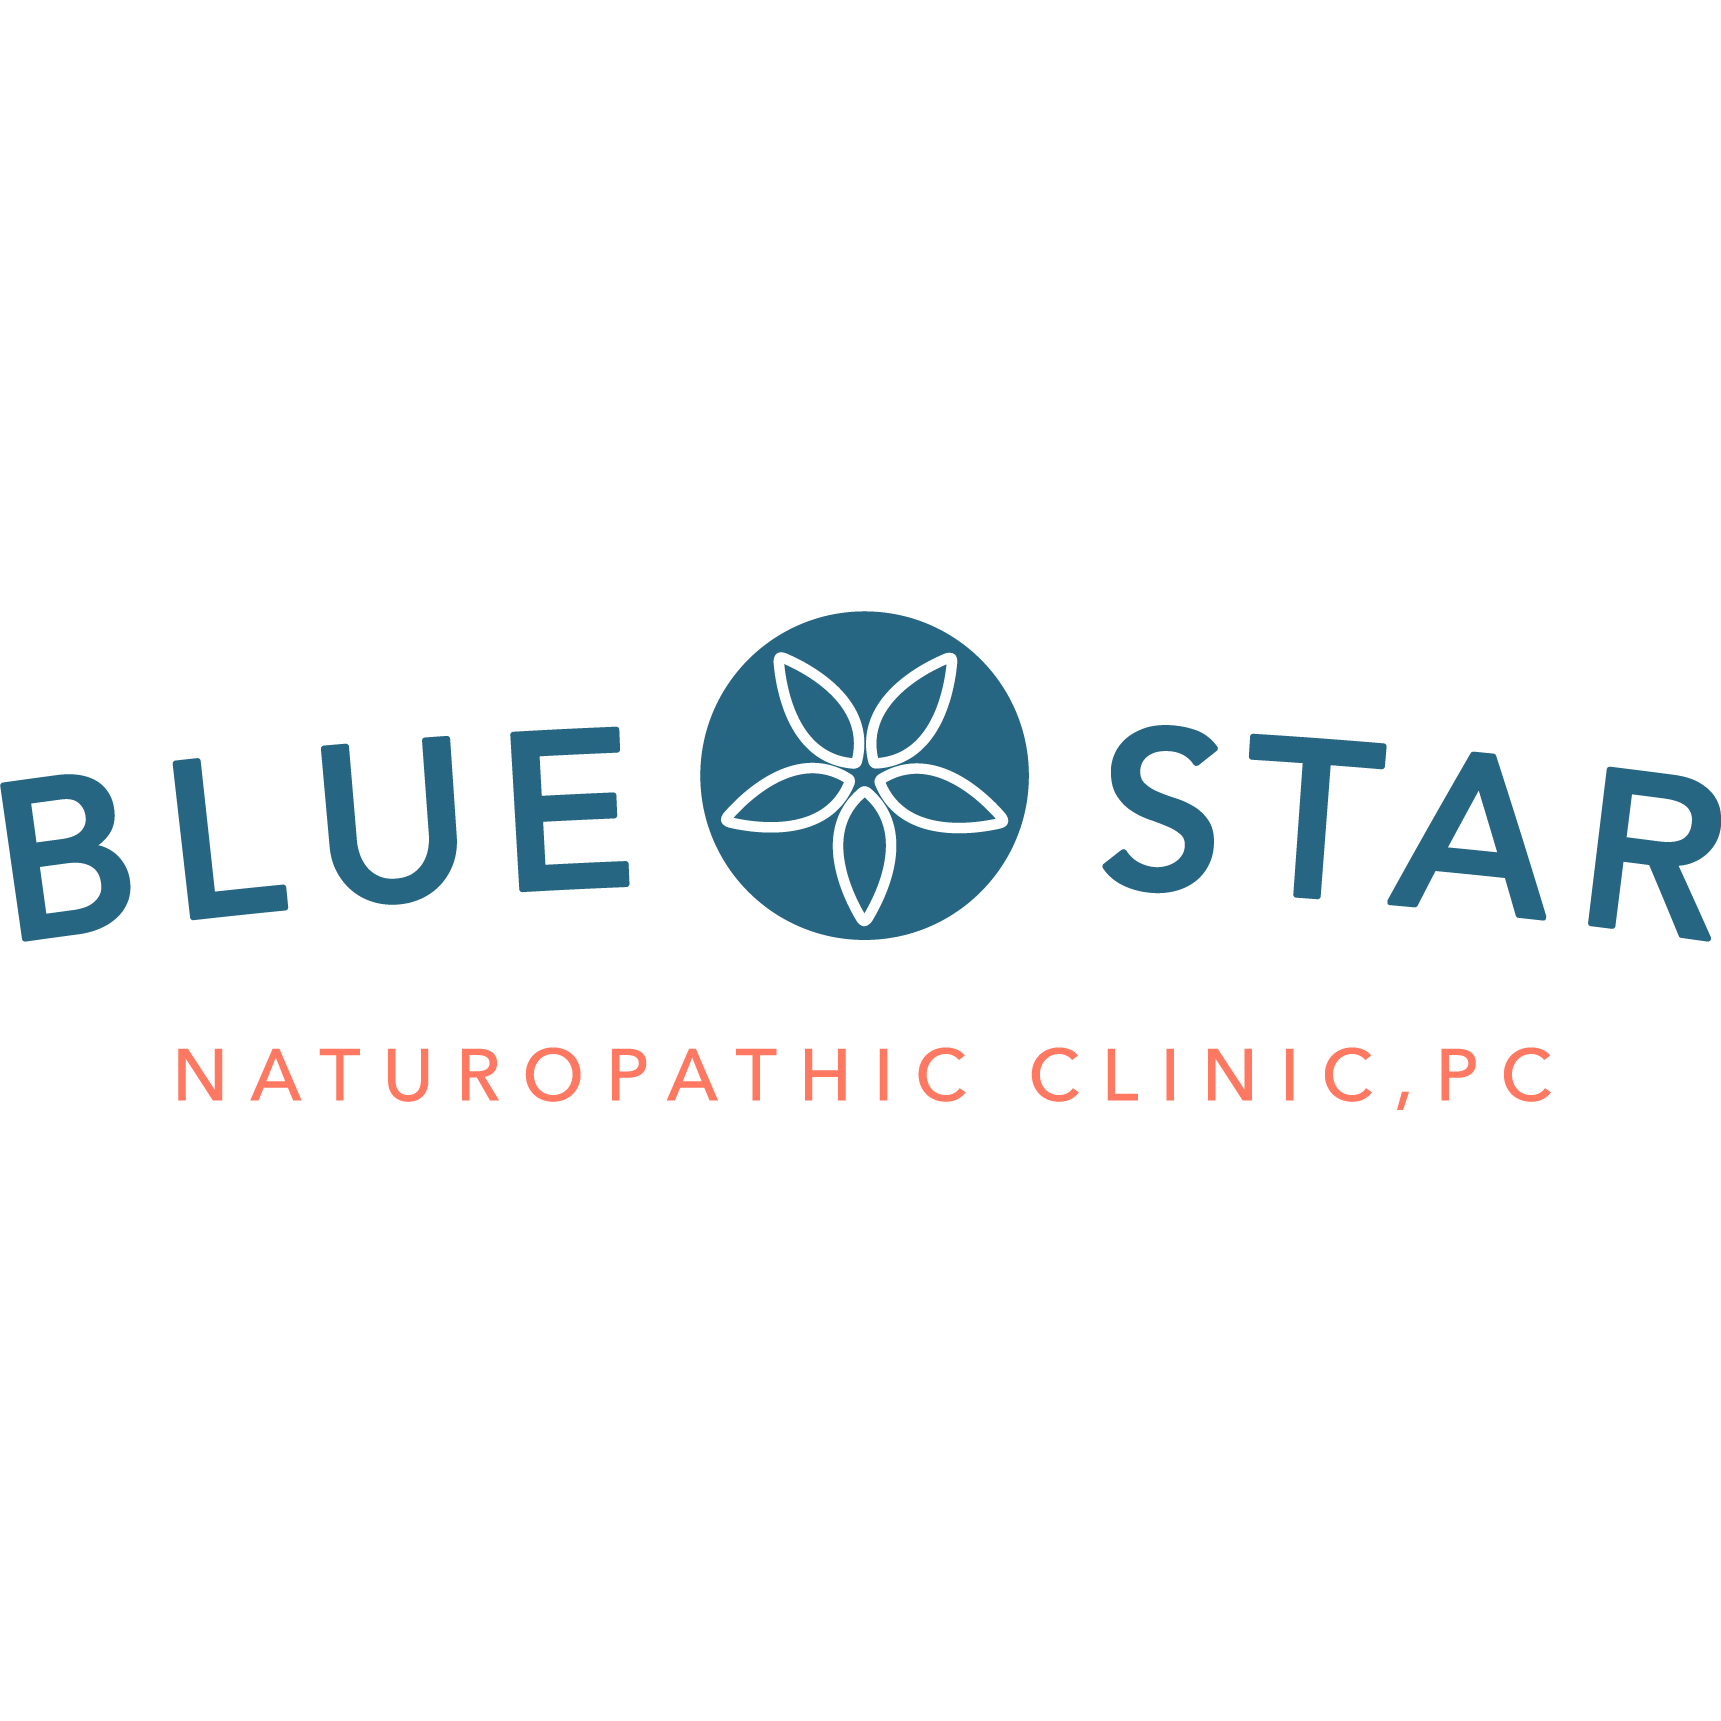 Blue Star Naturopathic Clinic